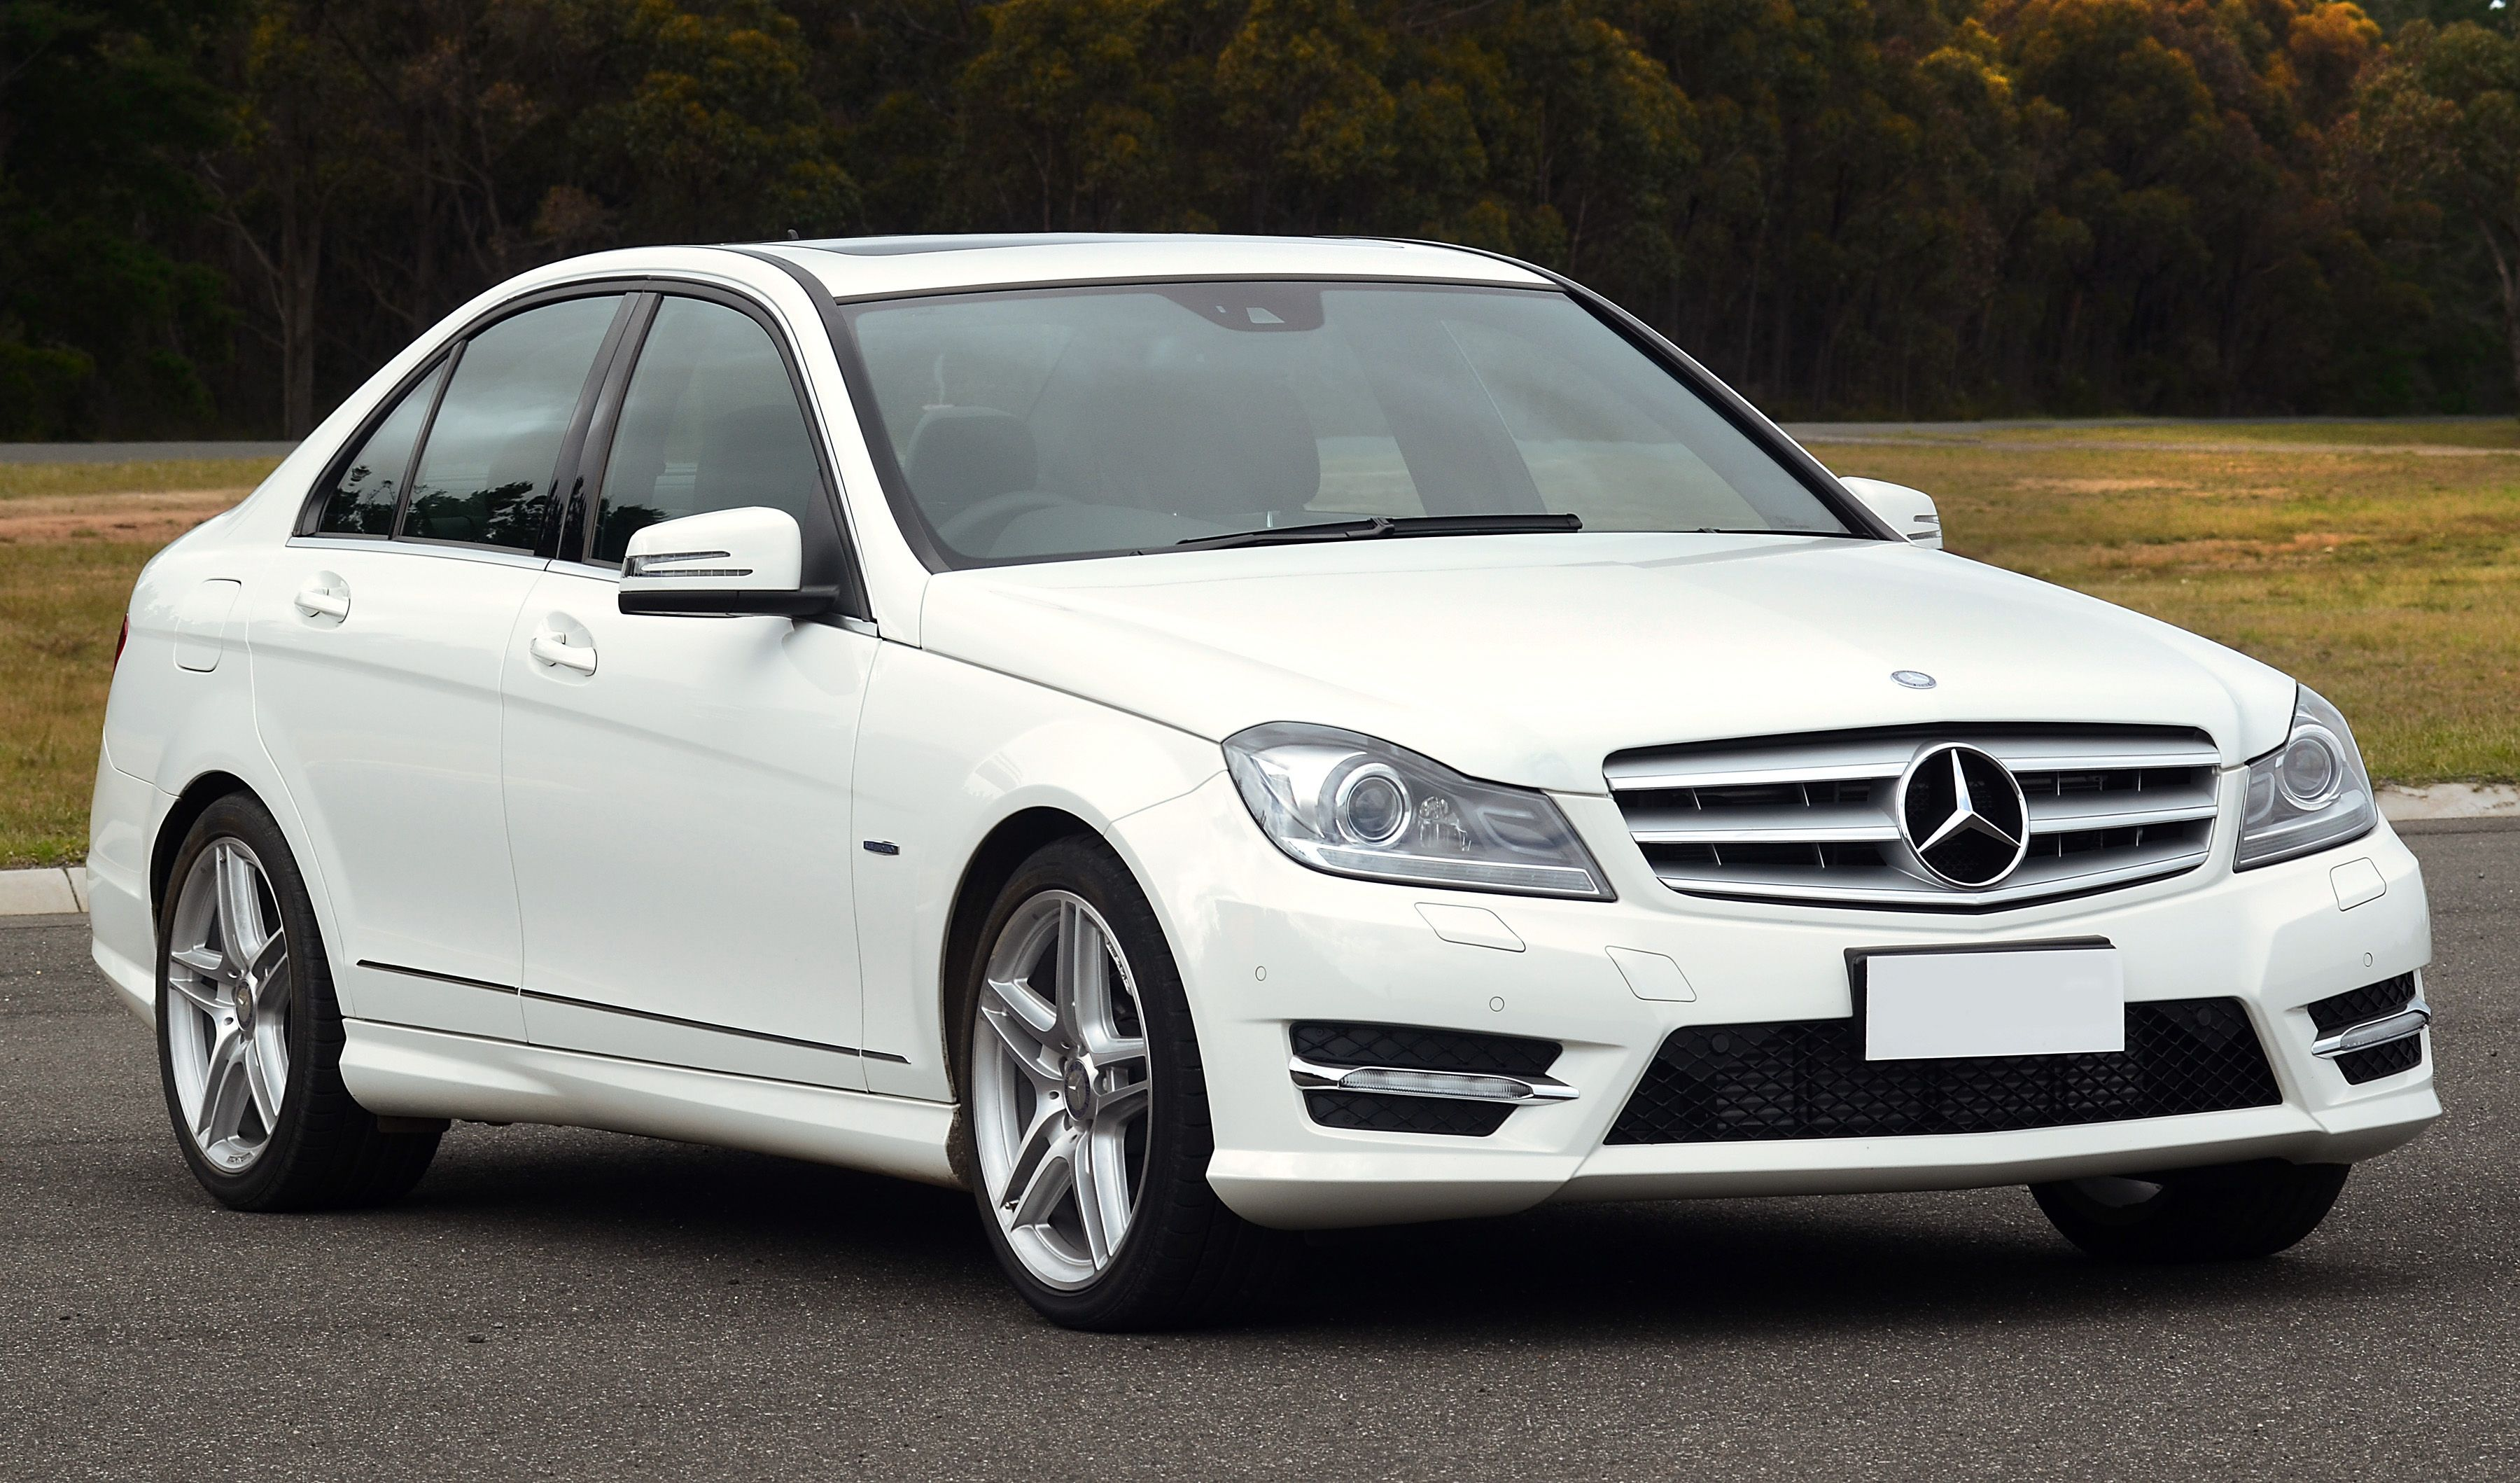 Mercedes Benz Hire For Occasions Close To Heart Mercedes Mercedes Benz Benz C